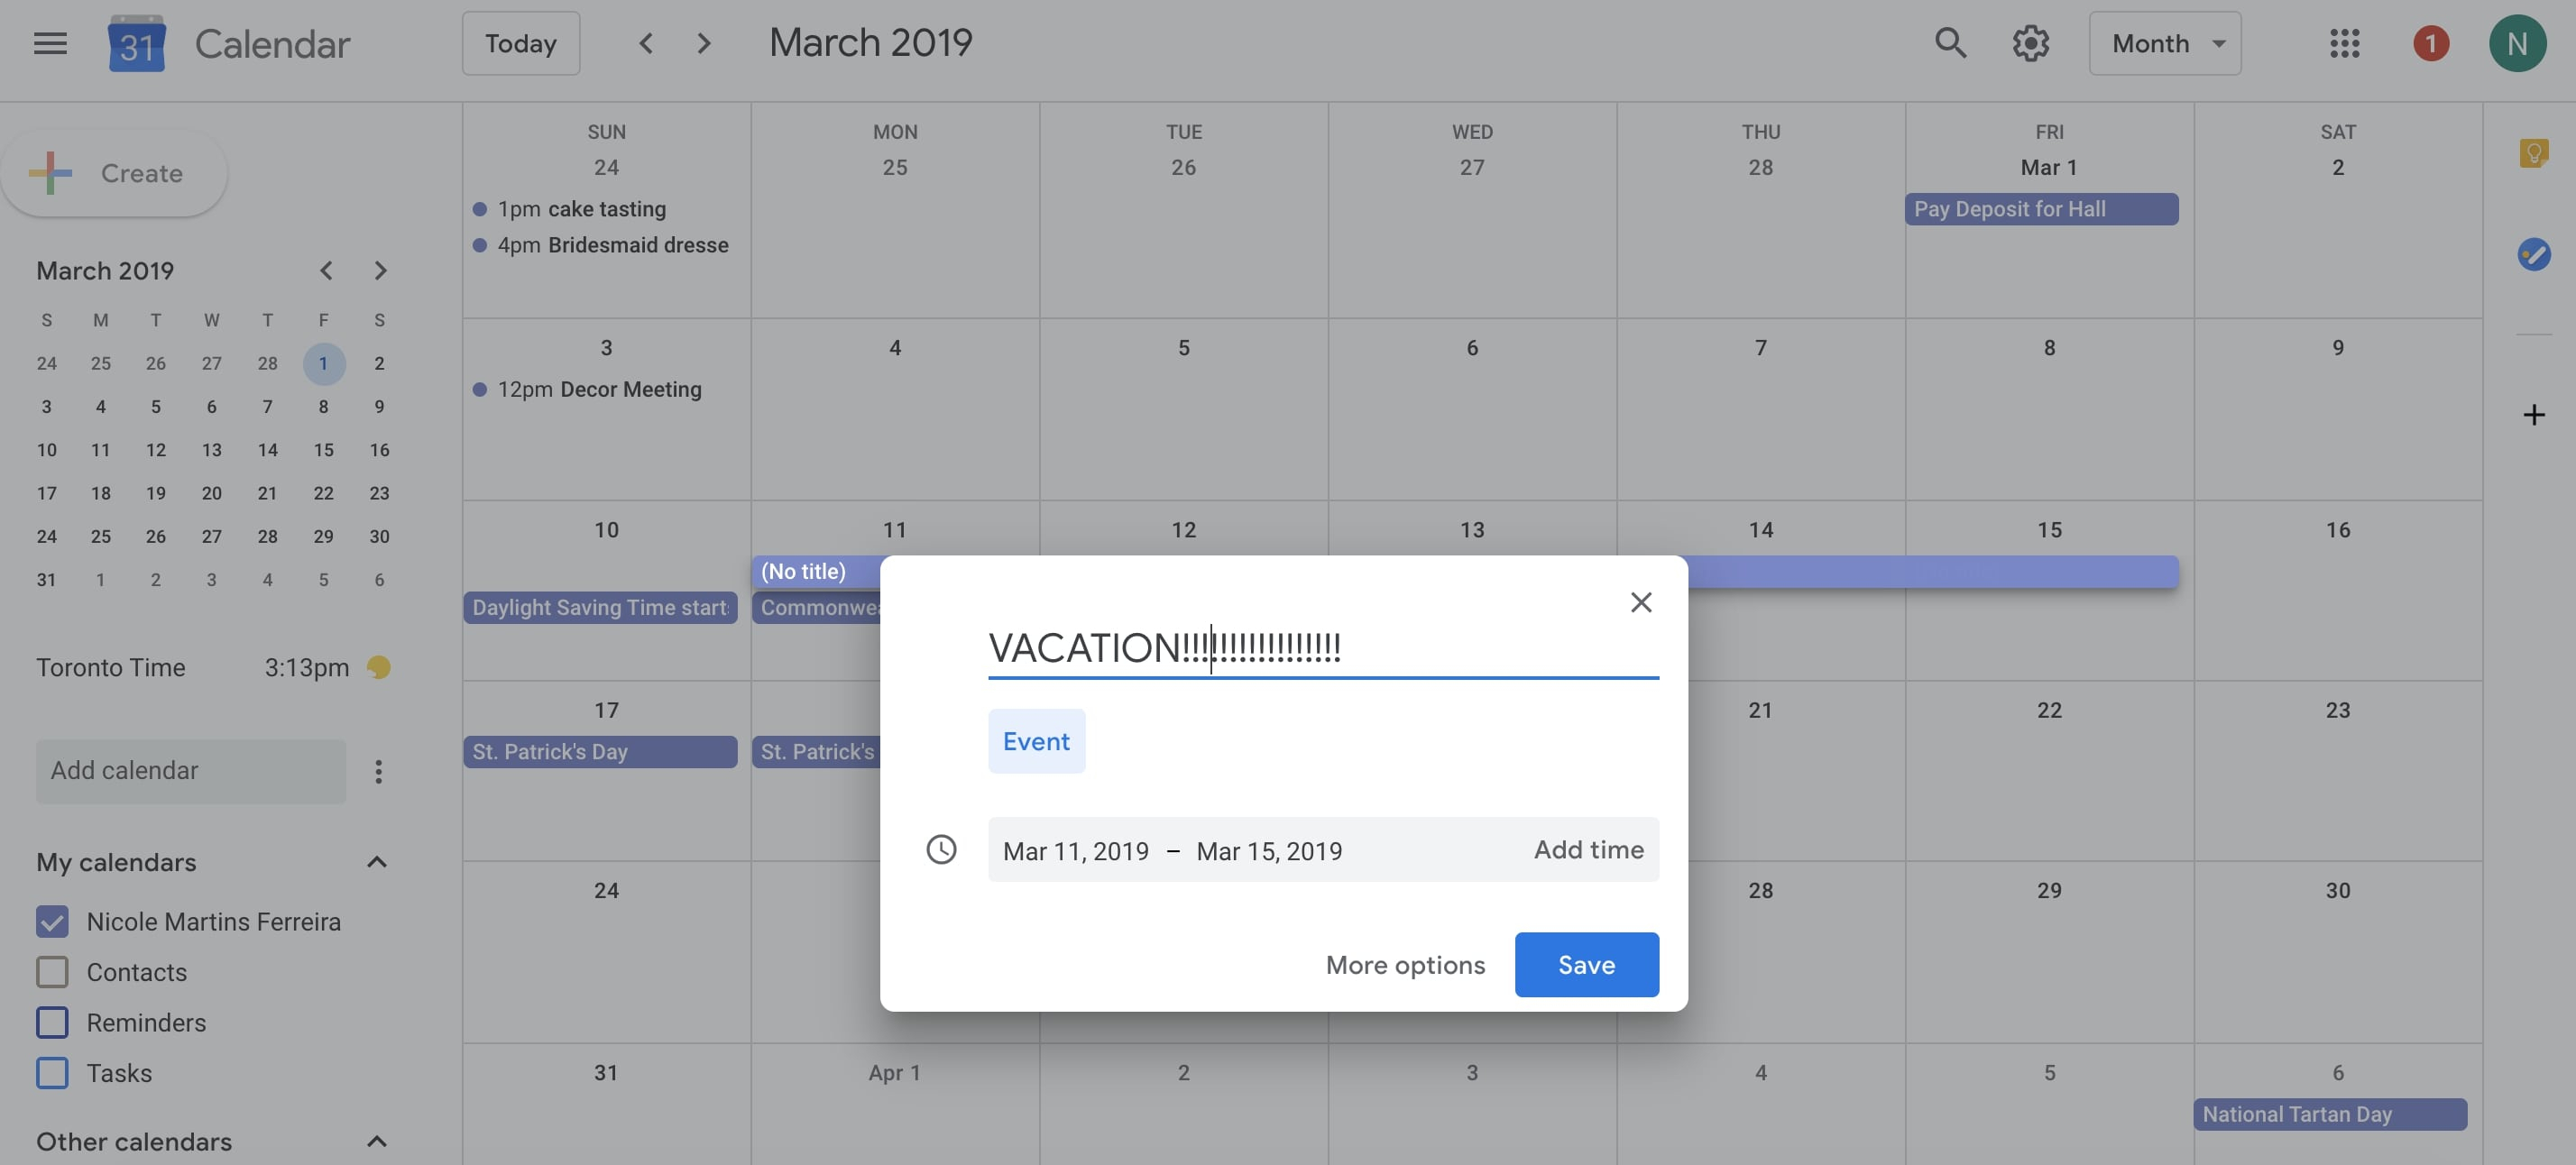 20 Ways To Use Google Calendar To Maximize Your Day In 2020 inside Google Calendar Hide Non Working Hours